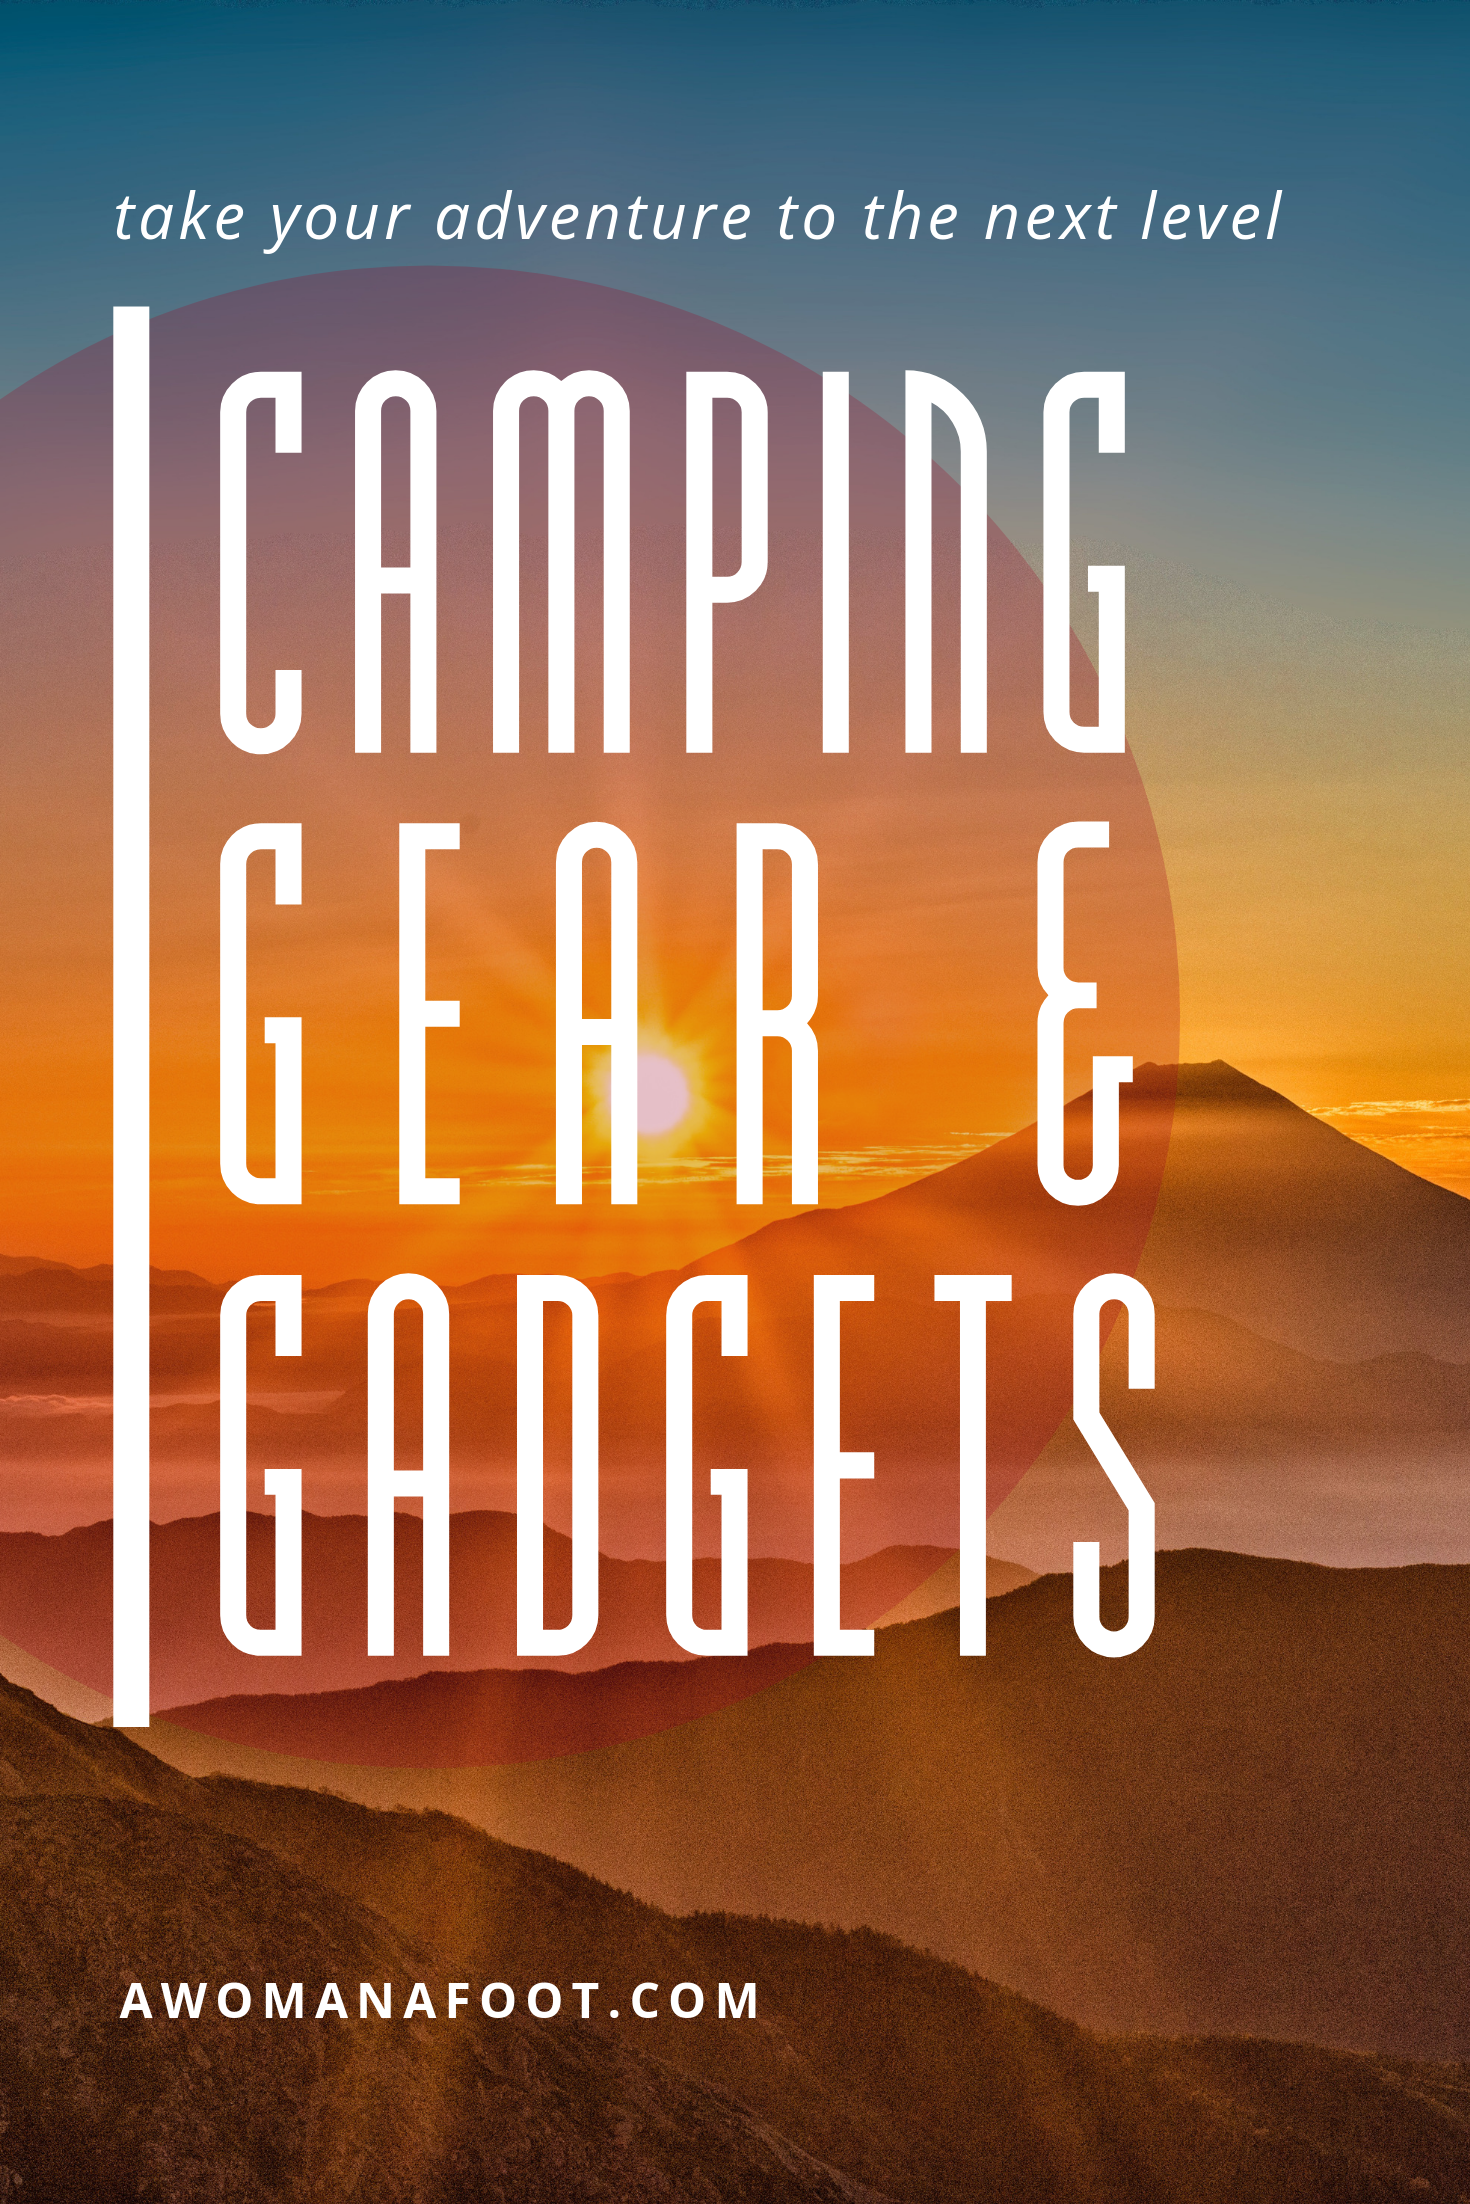 Are you ready to take your camping game to the next level? I got 10 awesome pieces of camping gear to provide you with safety, comfort, and entertainment during your next backpacking trip! Awomanafoot.com | #camping #hiking #backpacking #gear #gadgets #giftideas #GiftsforHikers #giftsForCampers #Outdoors #Adventure | Hiking & Camping Gear | How to sleep comfortably when camping | Best camping gear | Gift Ideas for Hikers and Campers |